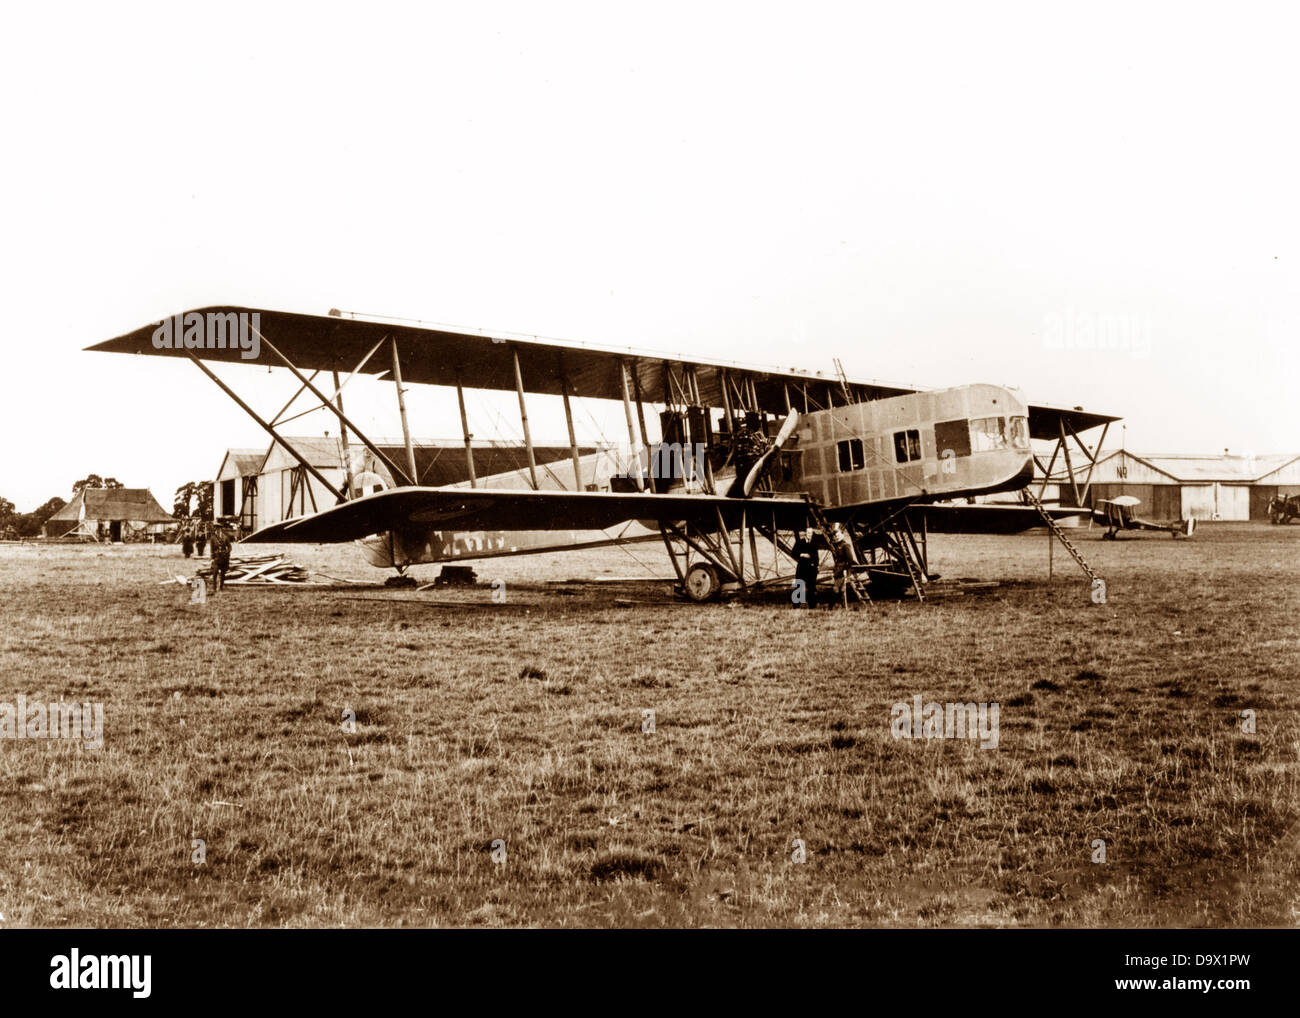 Kennedy Biplane in 1917 - Stock Image